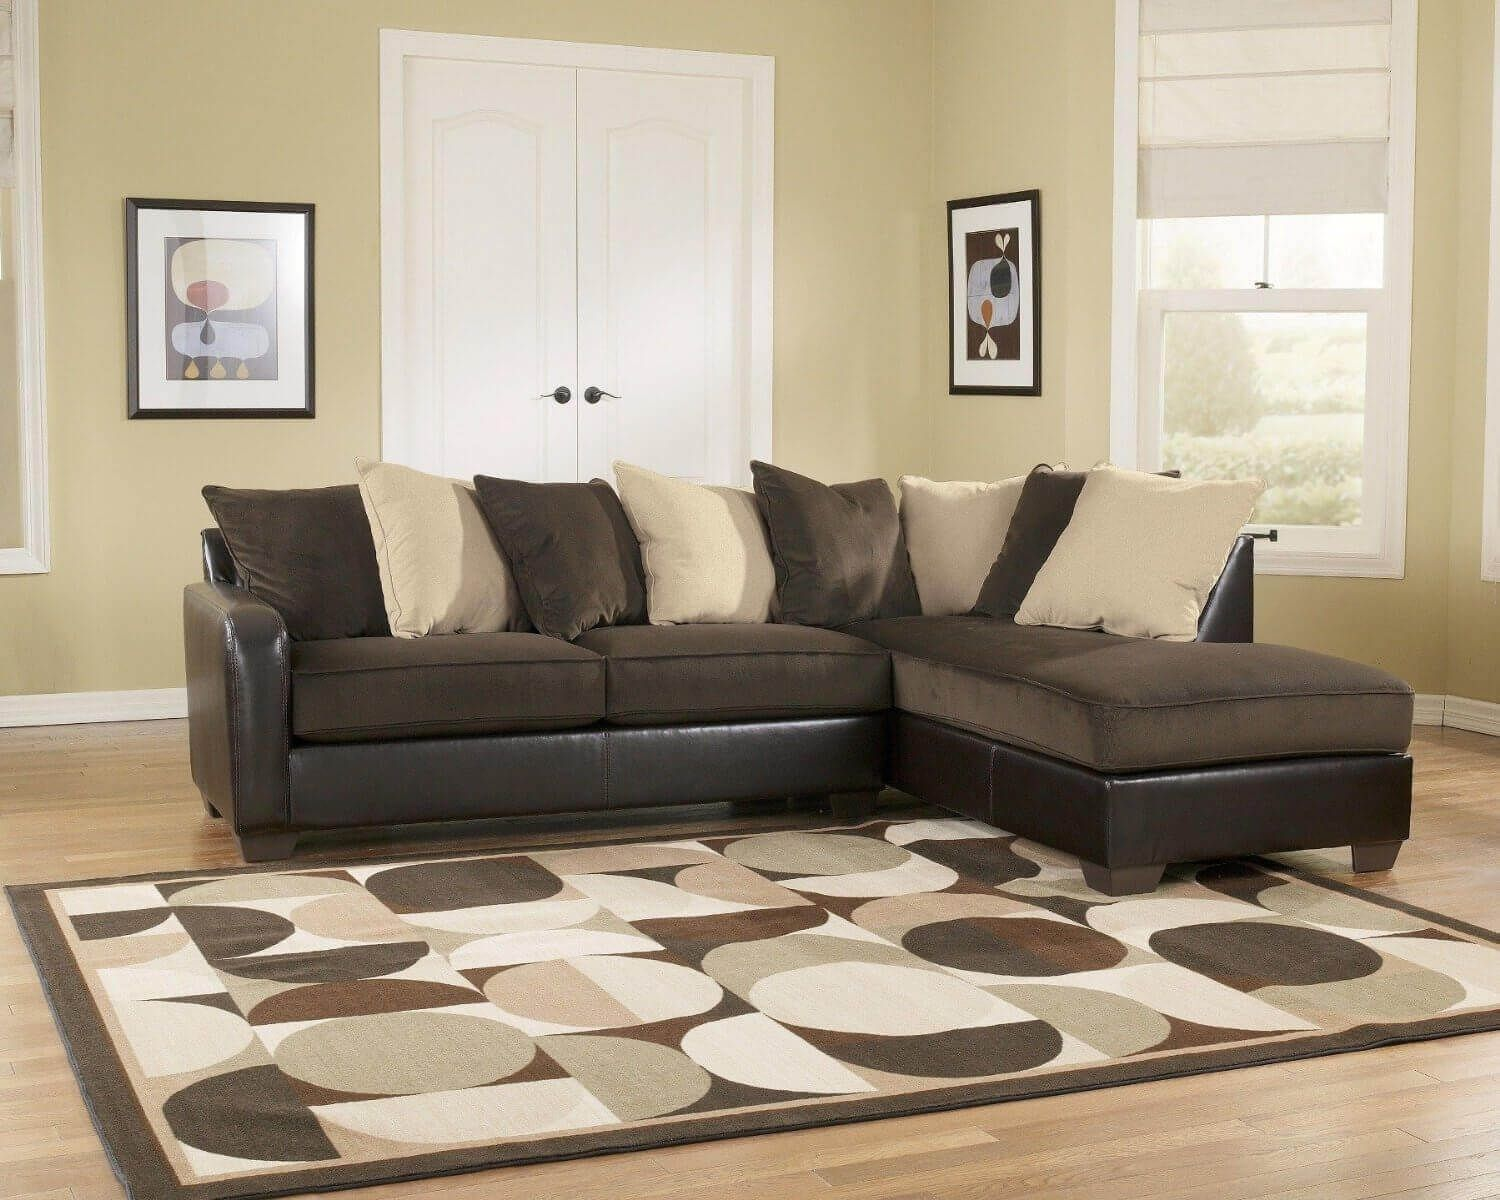 Leather Sofa Sectionals Under 1000 With Images Sectional Sofa With Chaise Ashley Furniture Sectional Couch Furniture